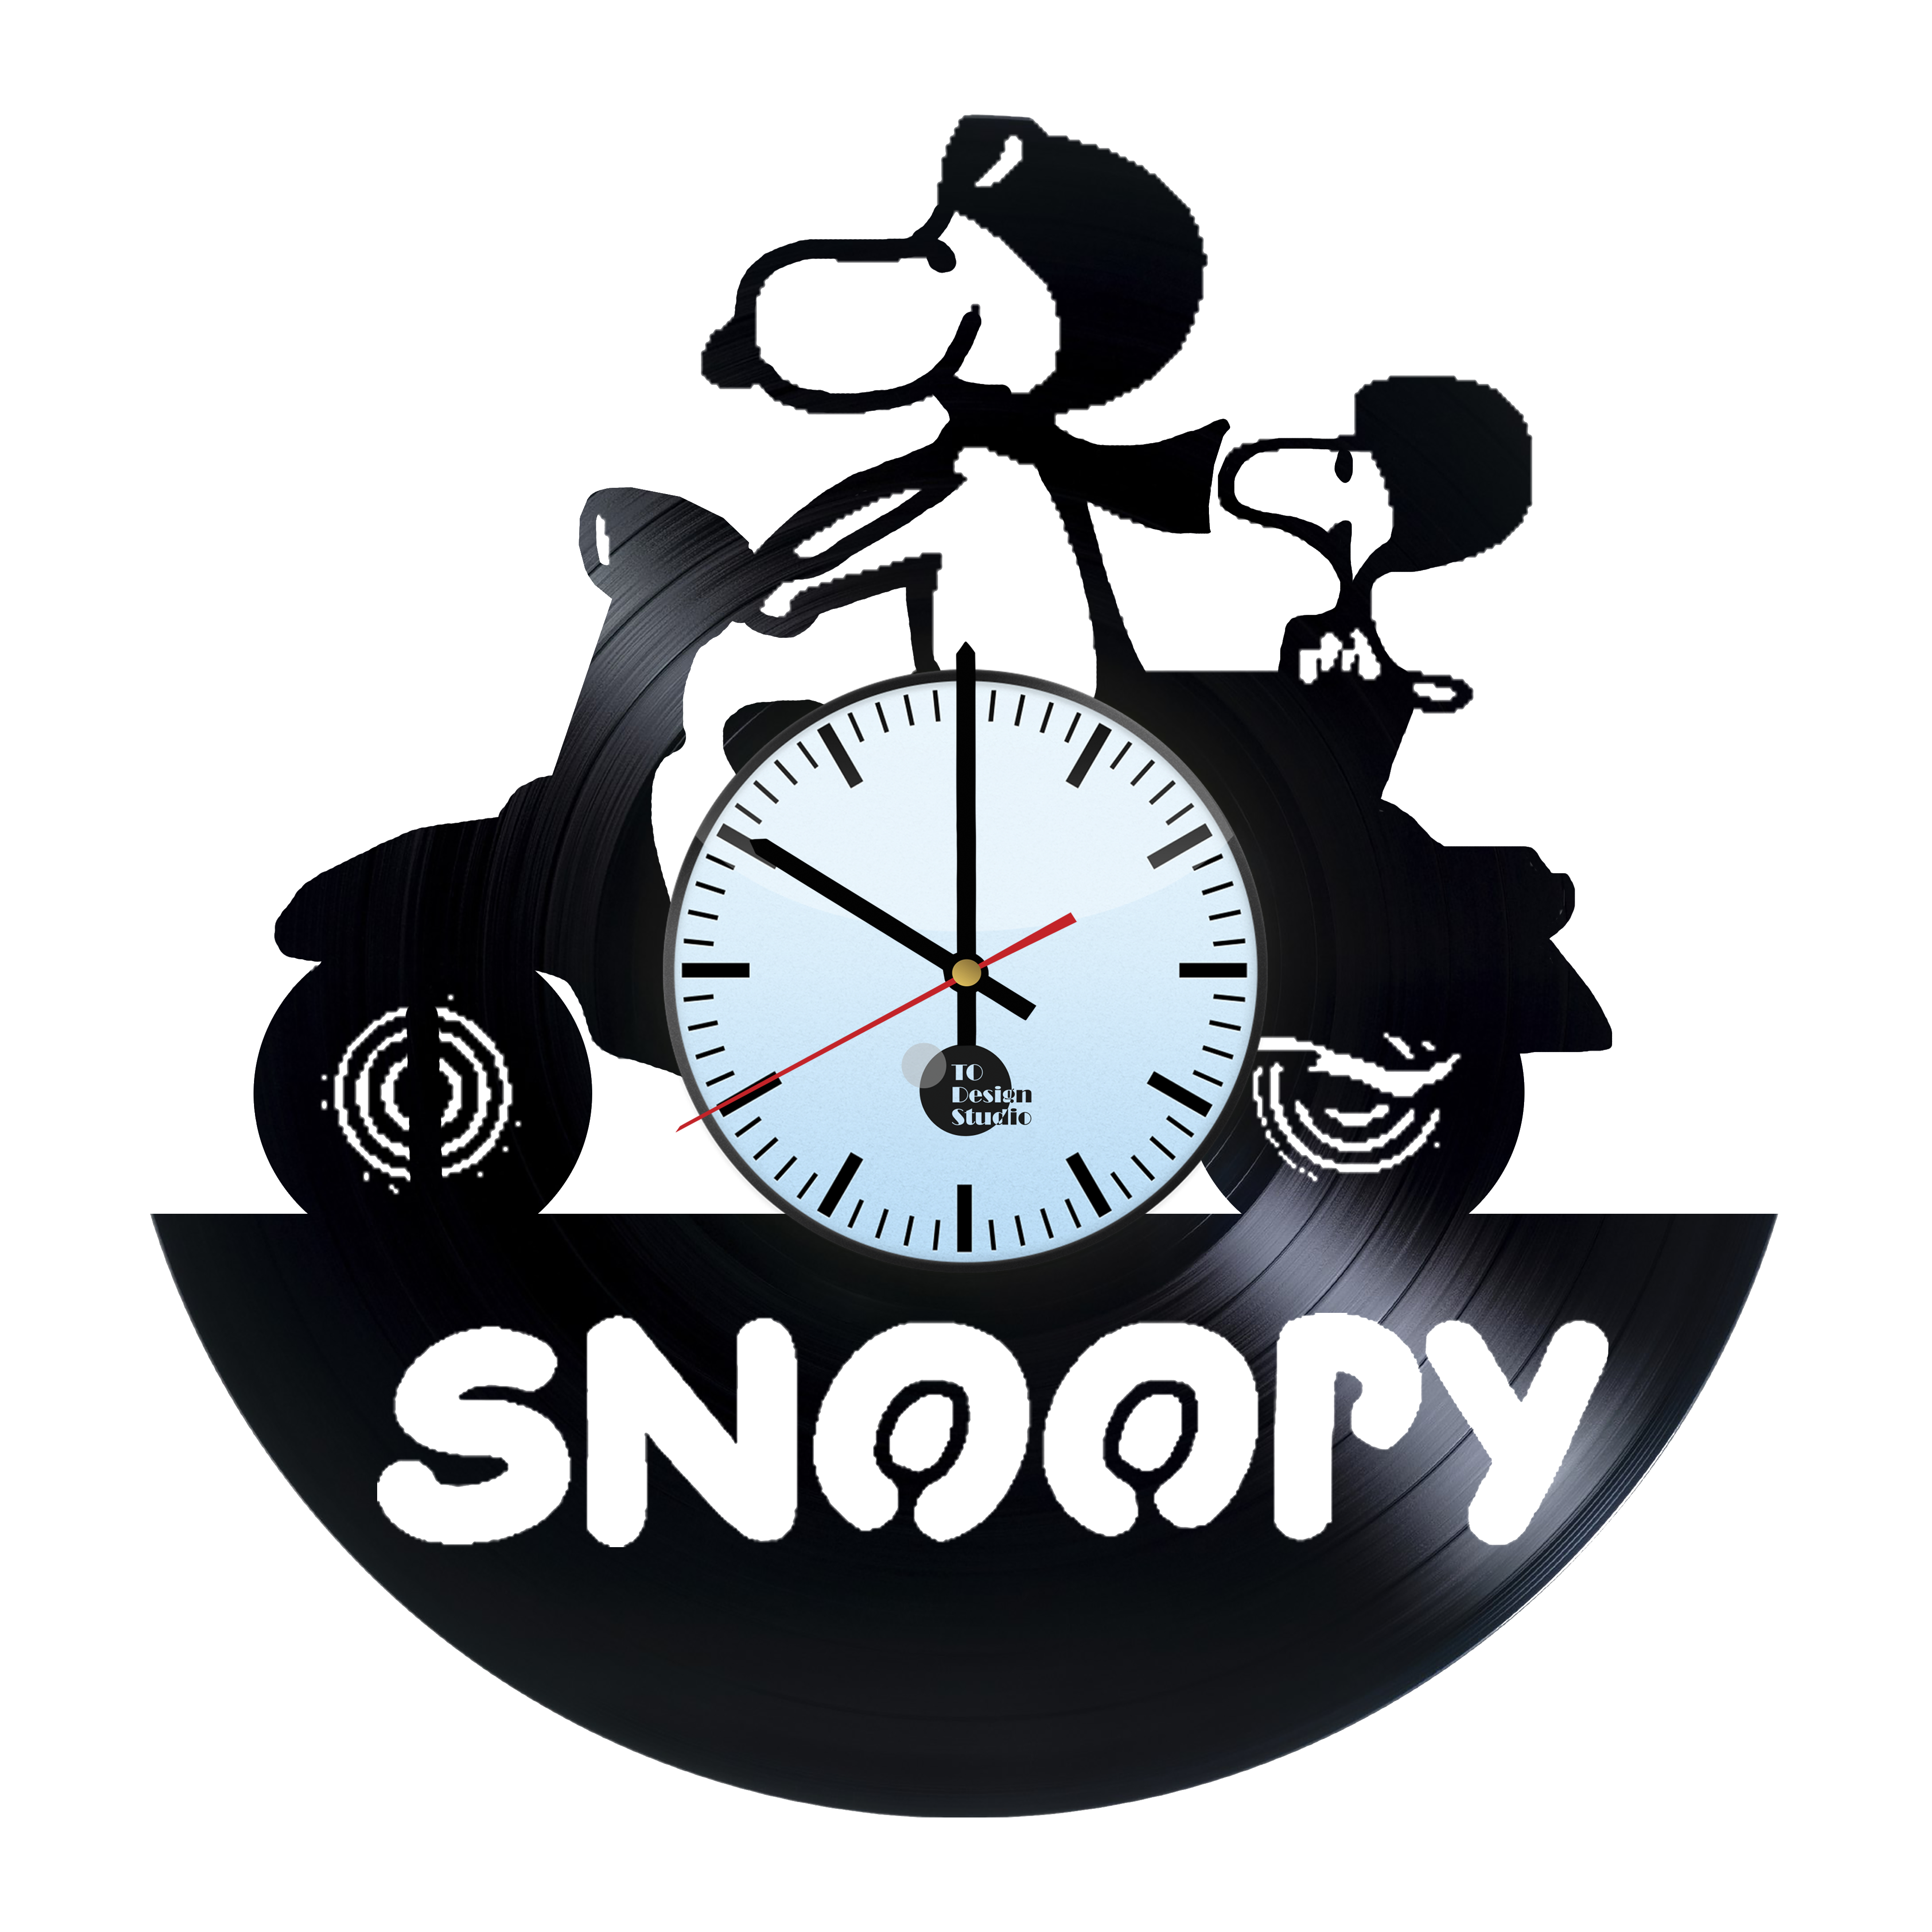 Vinyl clock designs png transparent. Snoopy and charlie brown